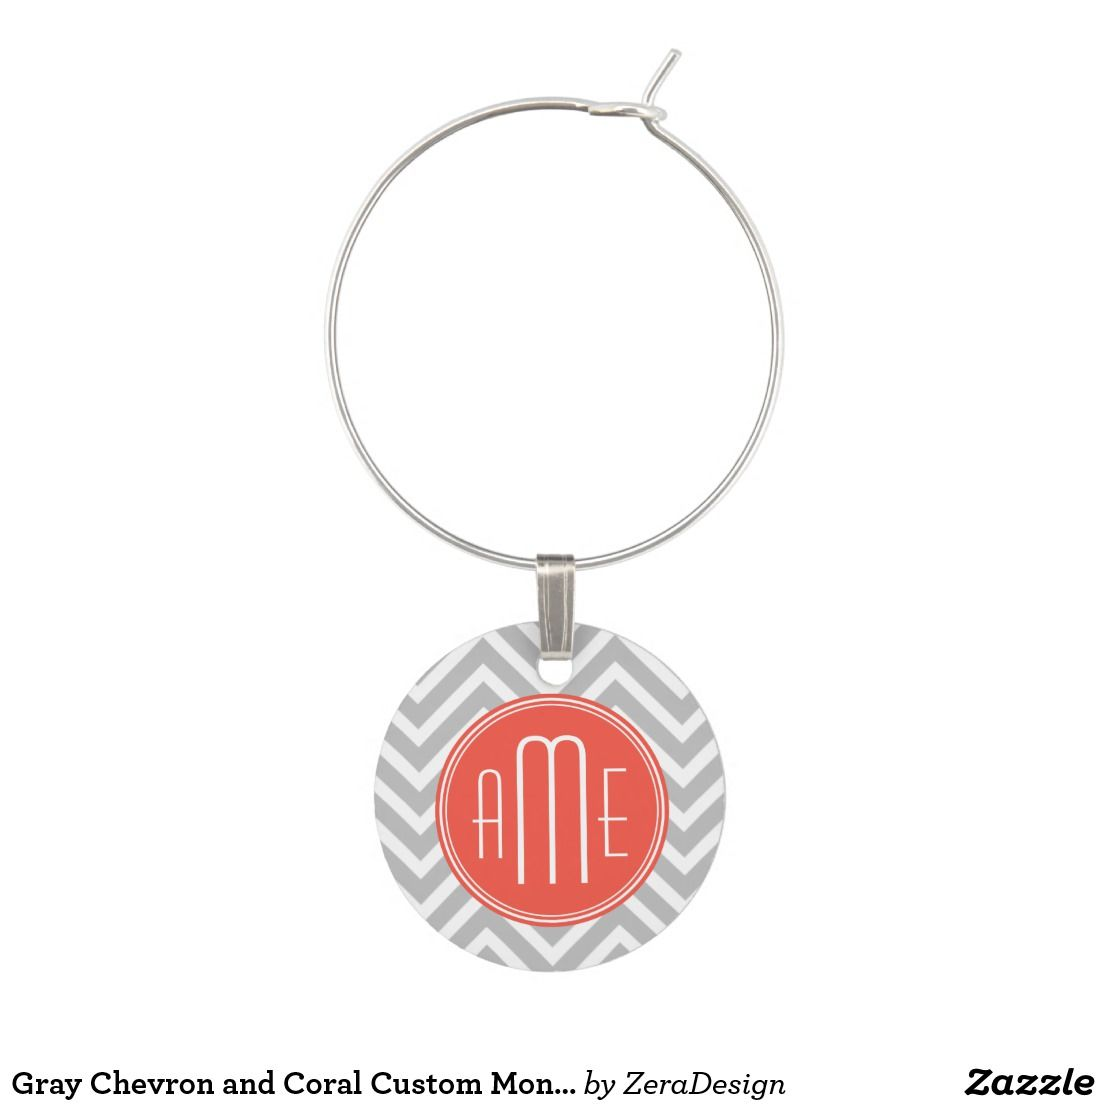 Gray Chevron and Coral Custom Monogram Wine Glass Charm